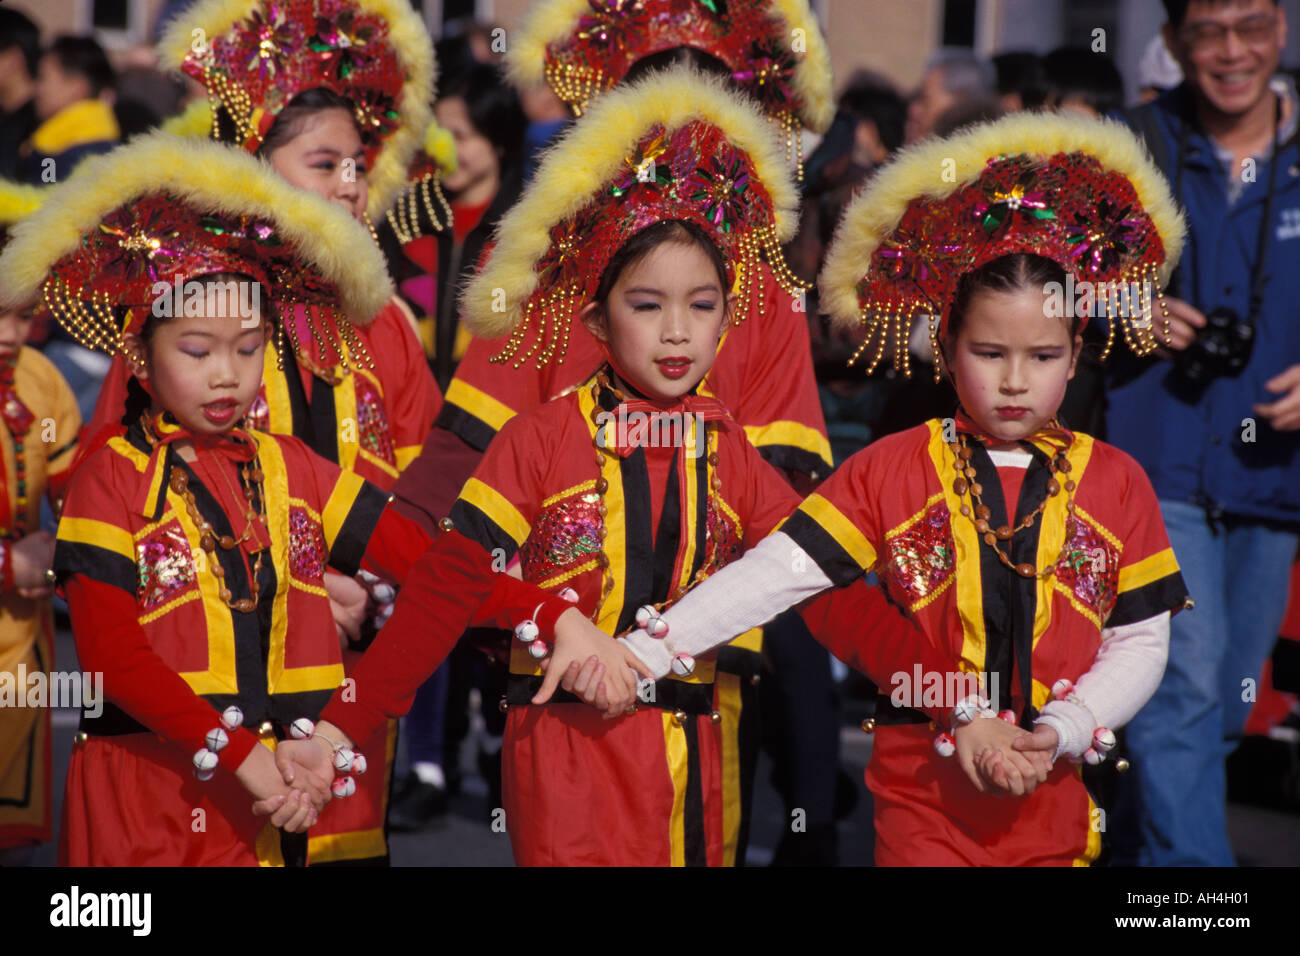 Children in traditional Chinese ethnic costume march in Chinese New Year parade Chinatown Vancouver British Columbia  sc 1 st  Alamy & Children in traditional Chinese ethnic costume march in Chinese New ...